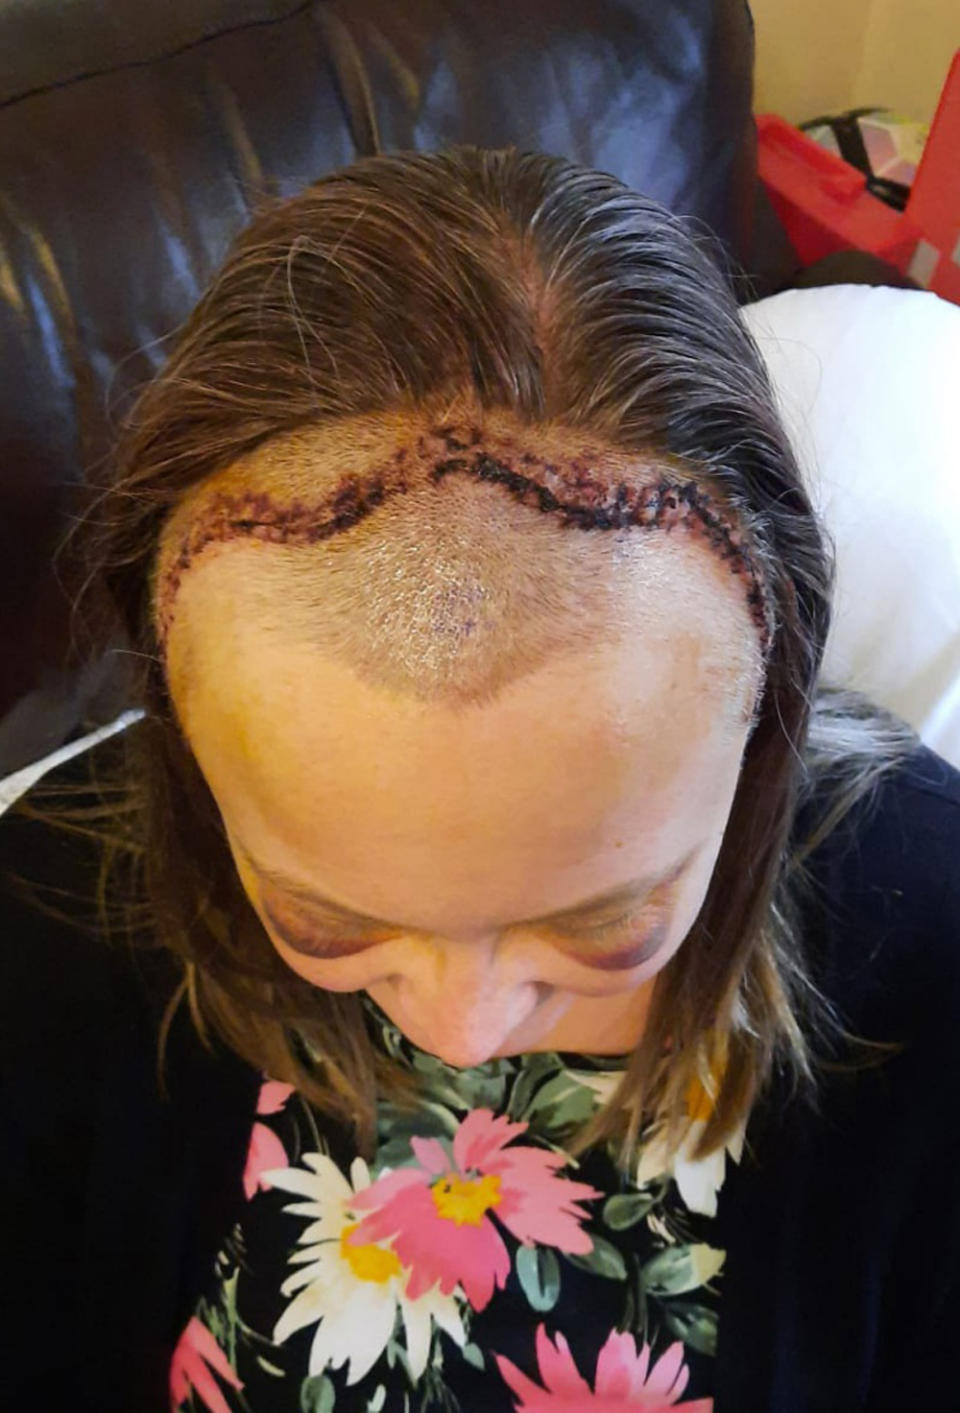 Marriott's scar five days after the craniotomy. (PA Real Life/Collect)